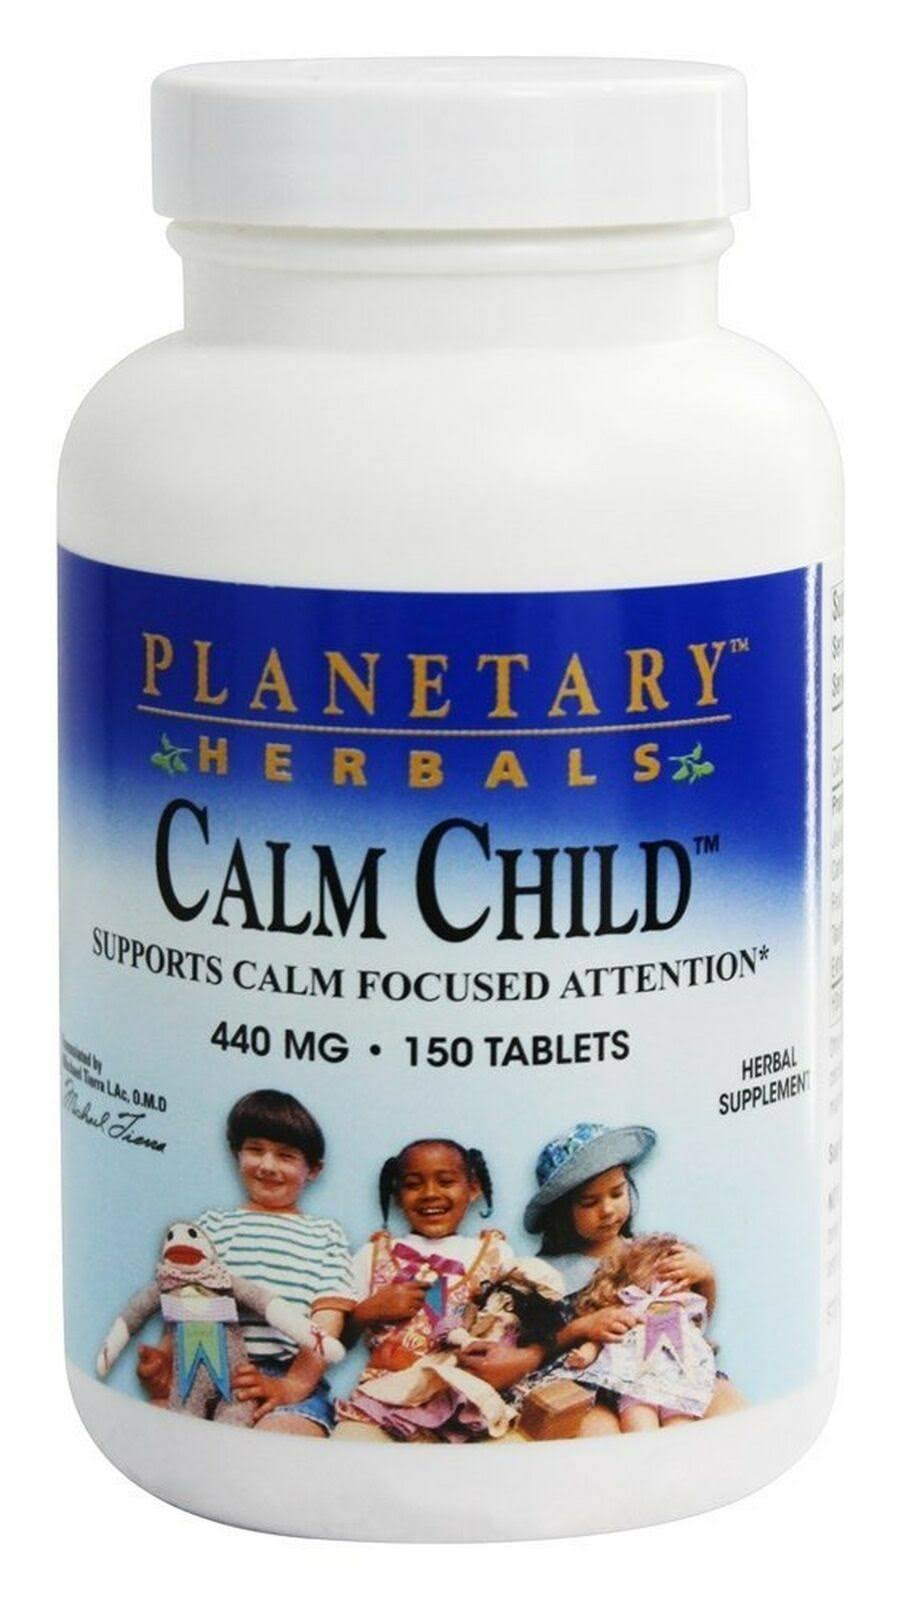 Planetary Herbals Calm Child Dietary Supplement - 440mg, 150 Tablets